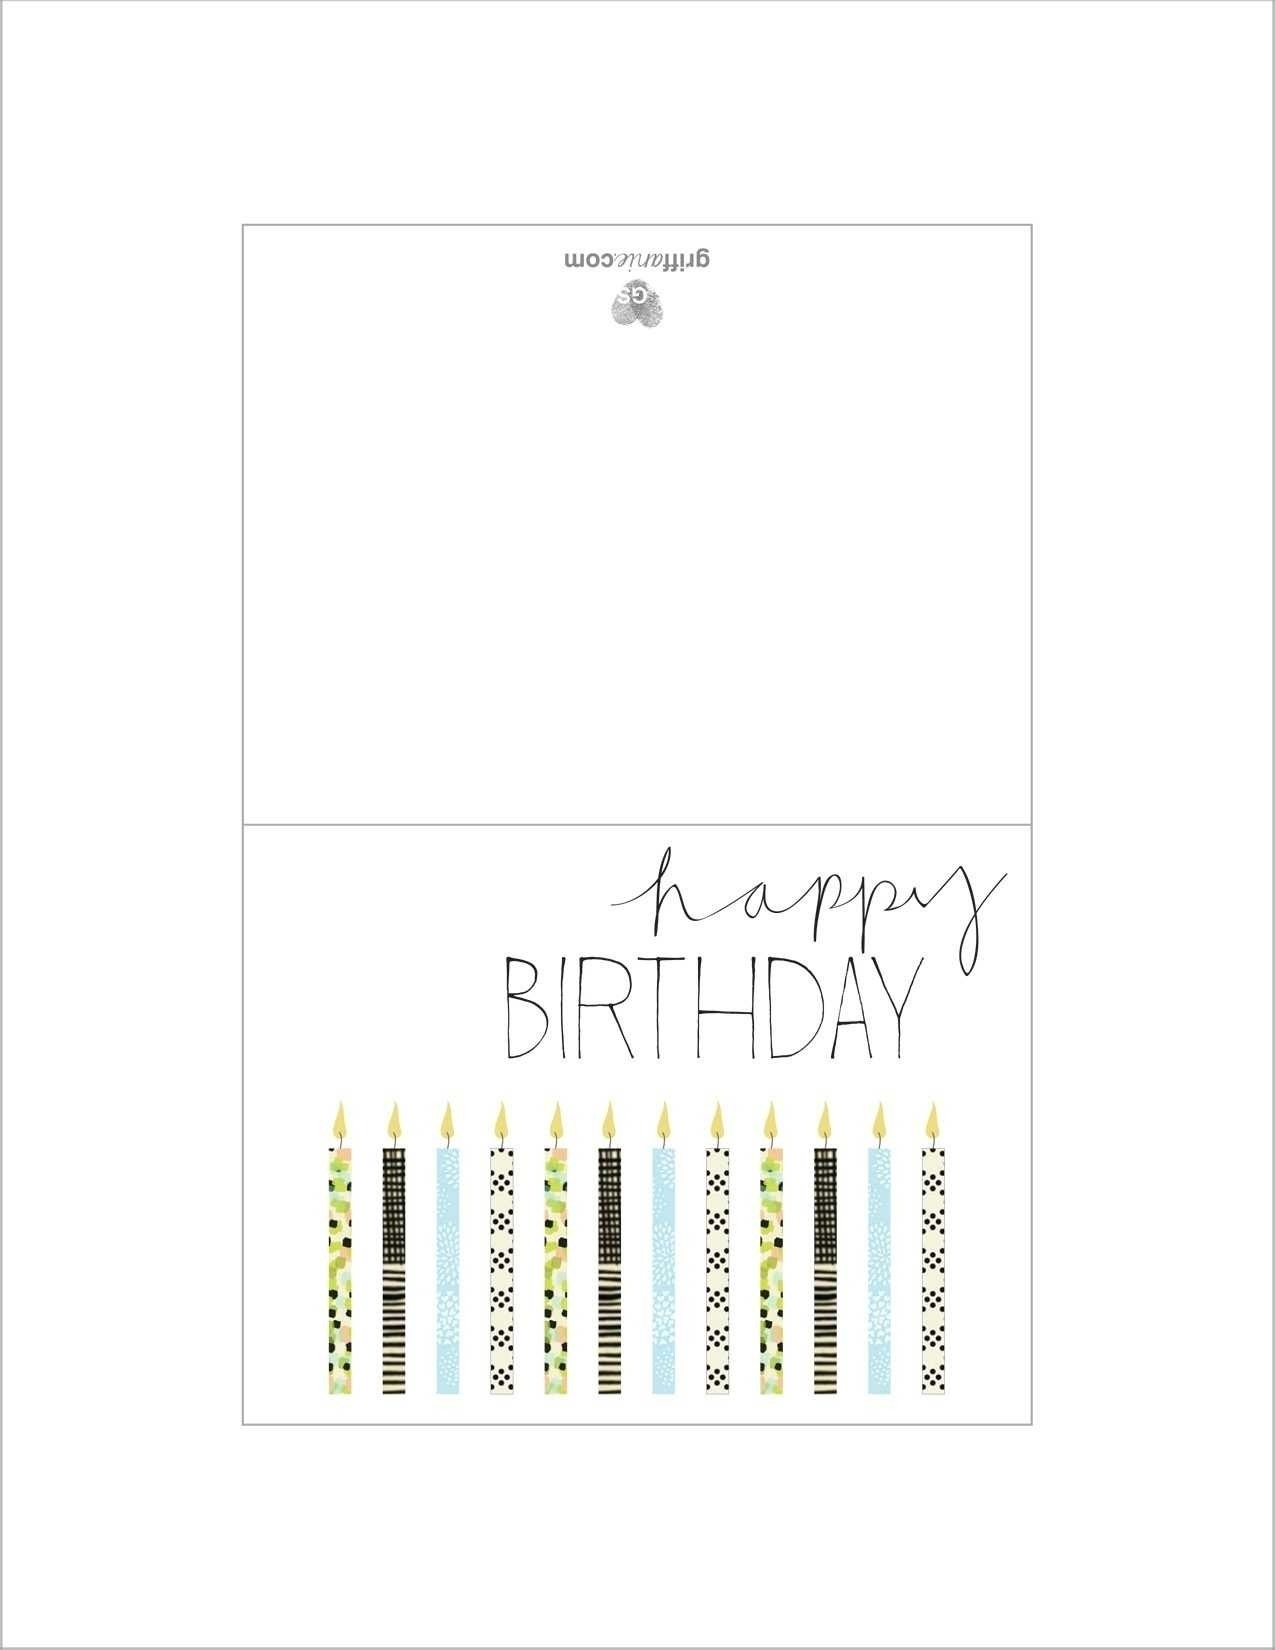 printable birthday cards for dad ; printable-dad-birthday-cards-linksof-london-for-printable-with-regard-to-printable-birthday-cards-foldable-for-dad